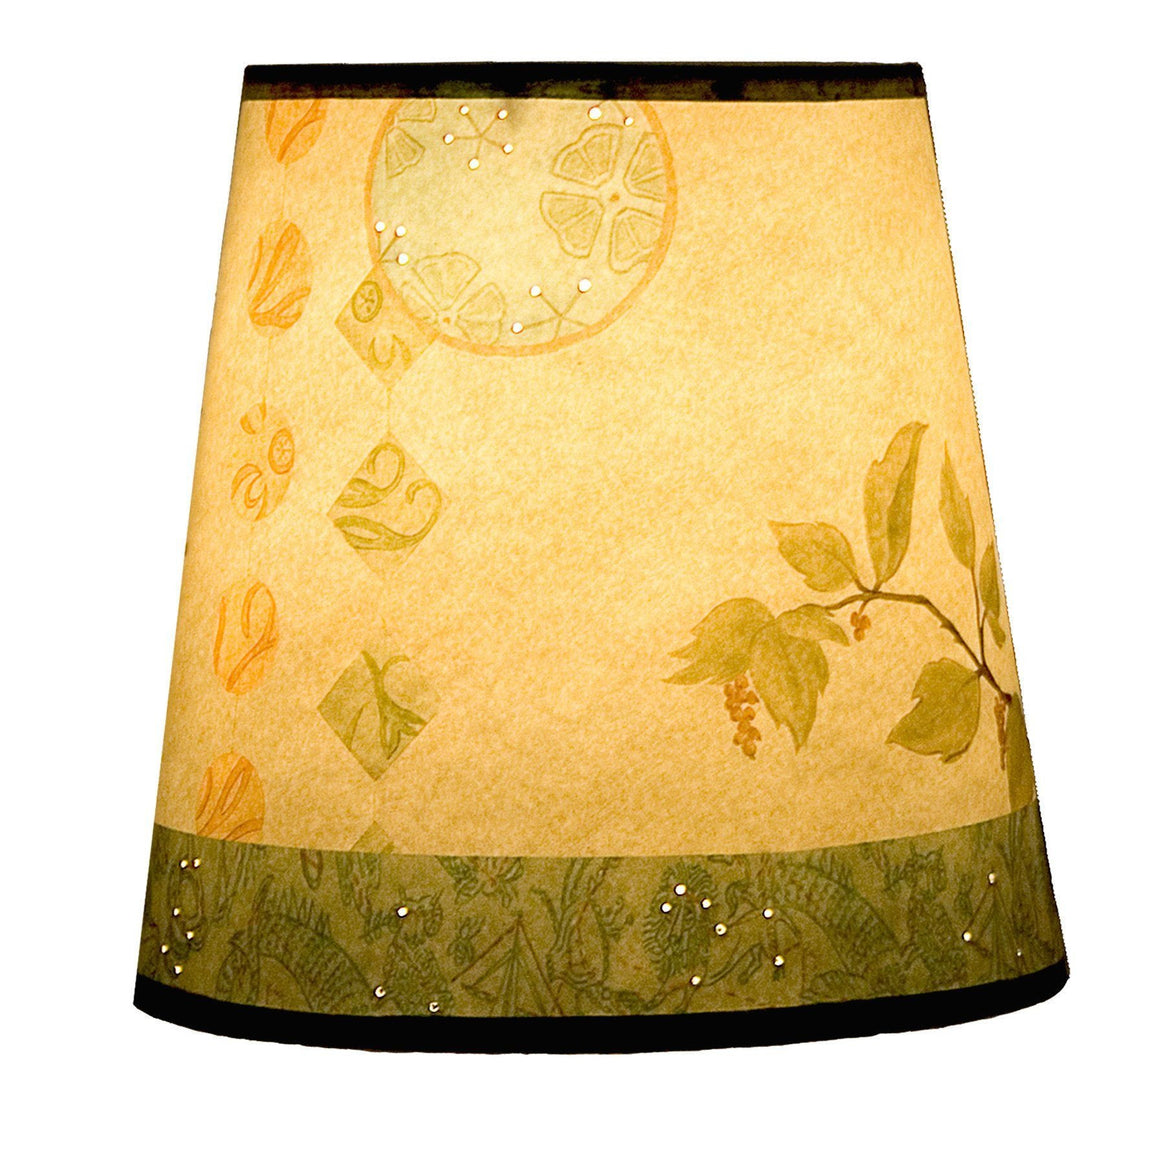 Small Drum Lamp Shade in Celestial Leaf